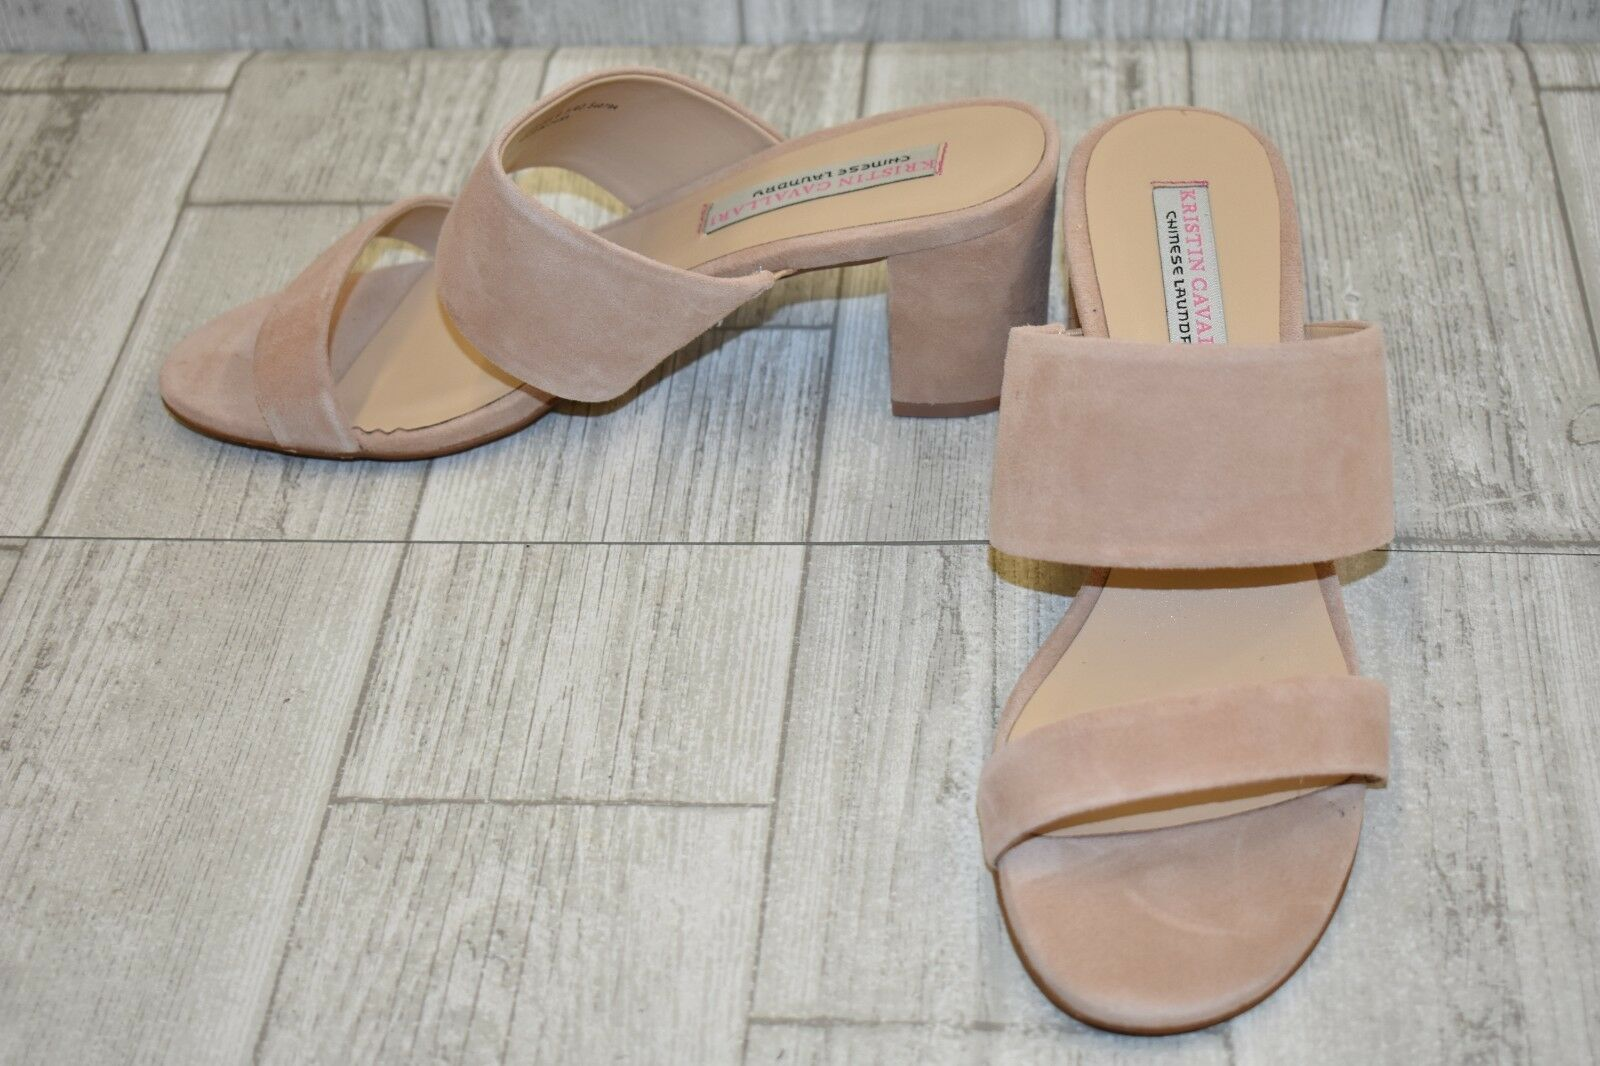 Kristin Cavallari Lakeview Suede Slide Sandals, Women's Size 9.5, 9.5, 9.5, Tigers Eye a7bee6